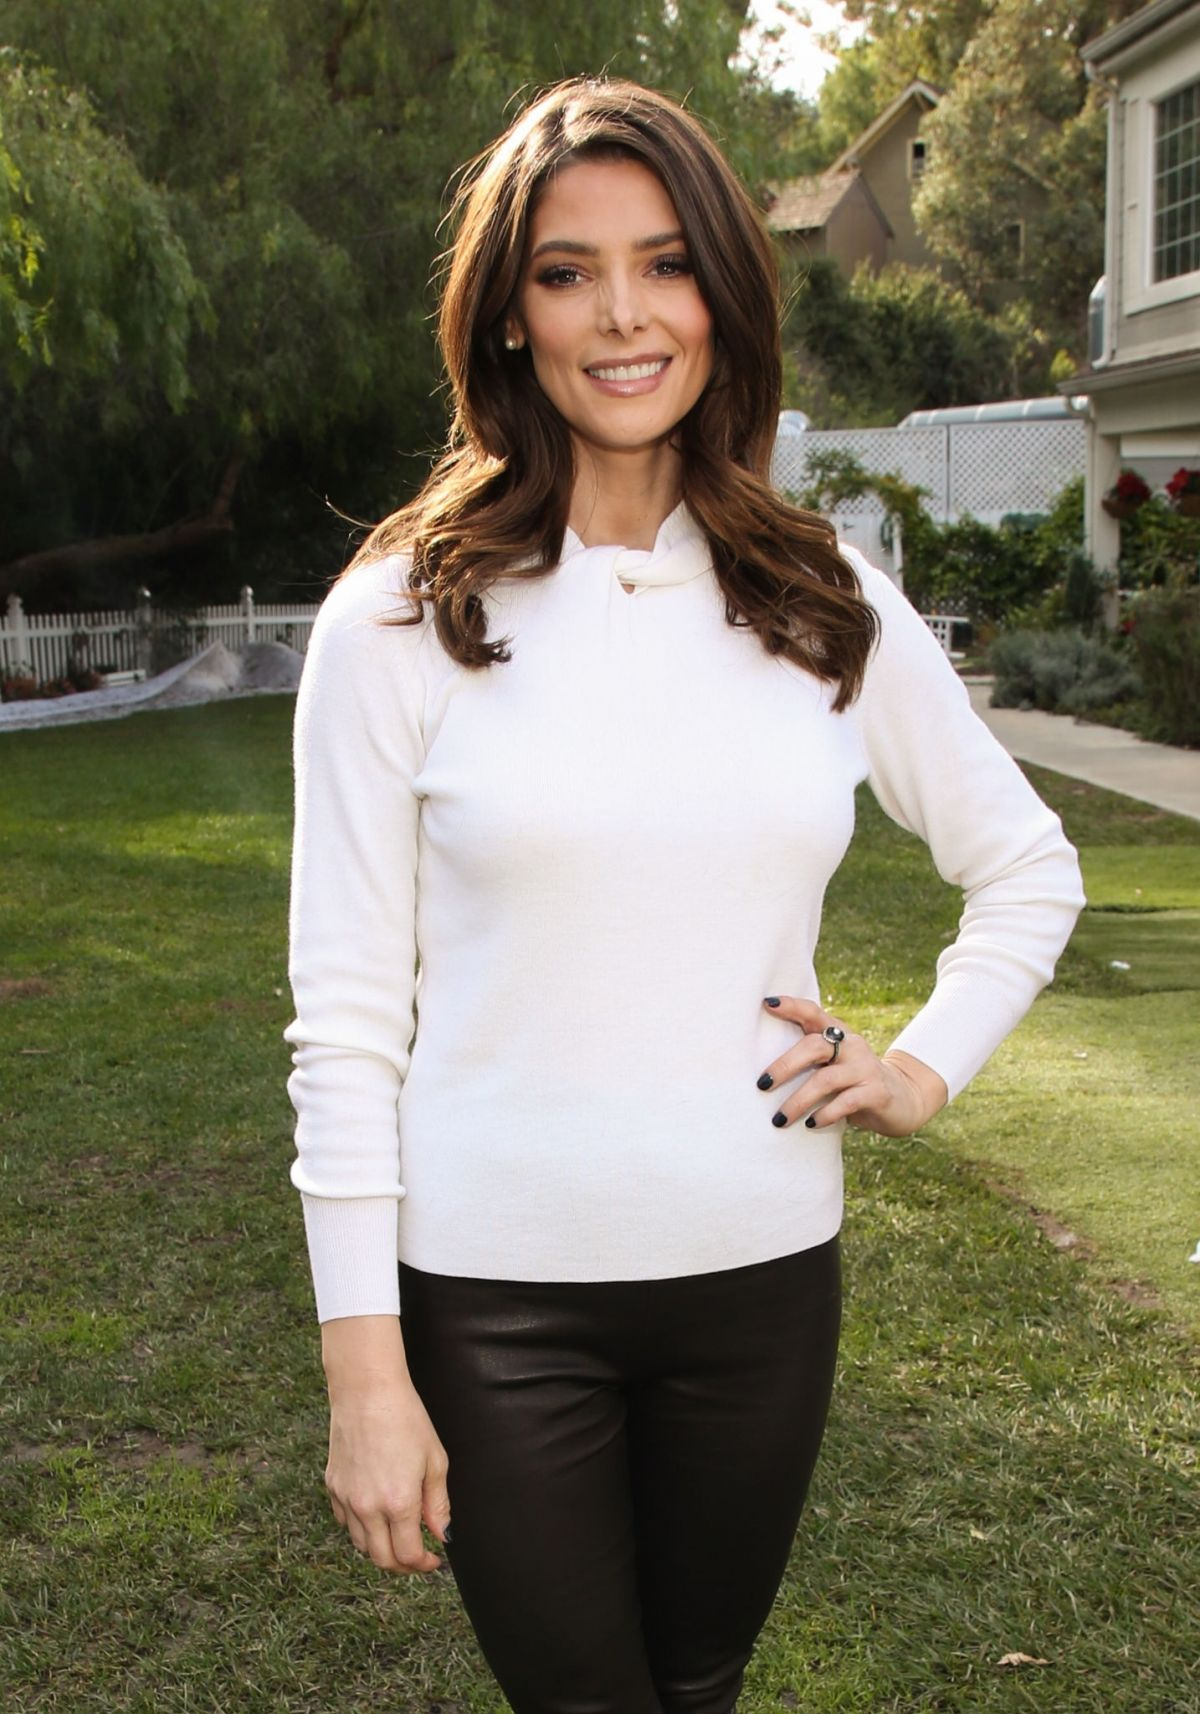 Ashley Greene On Hallmark Channel's 'Home & Family' to discuss new movie Christmas on My Mind in ...